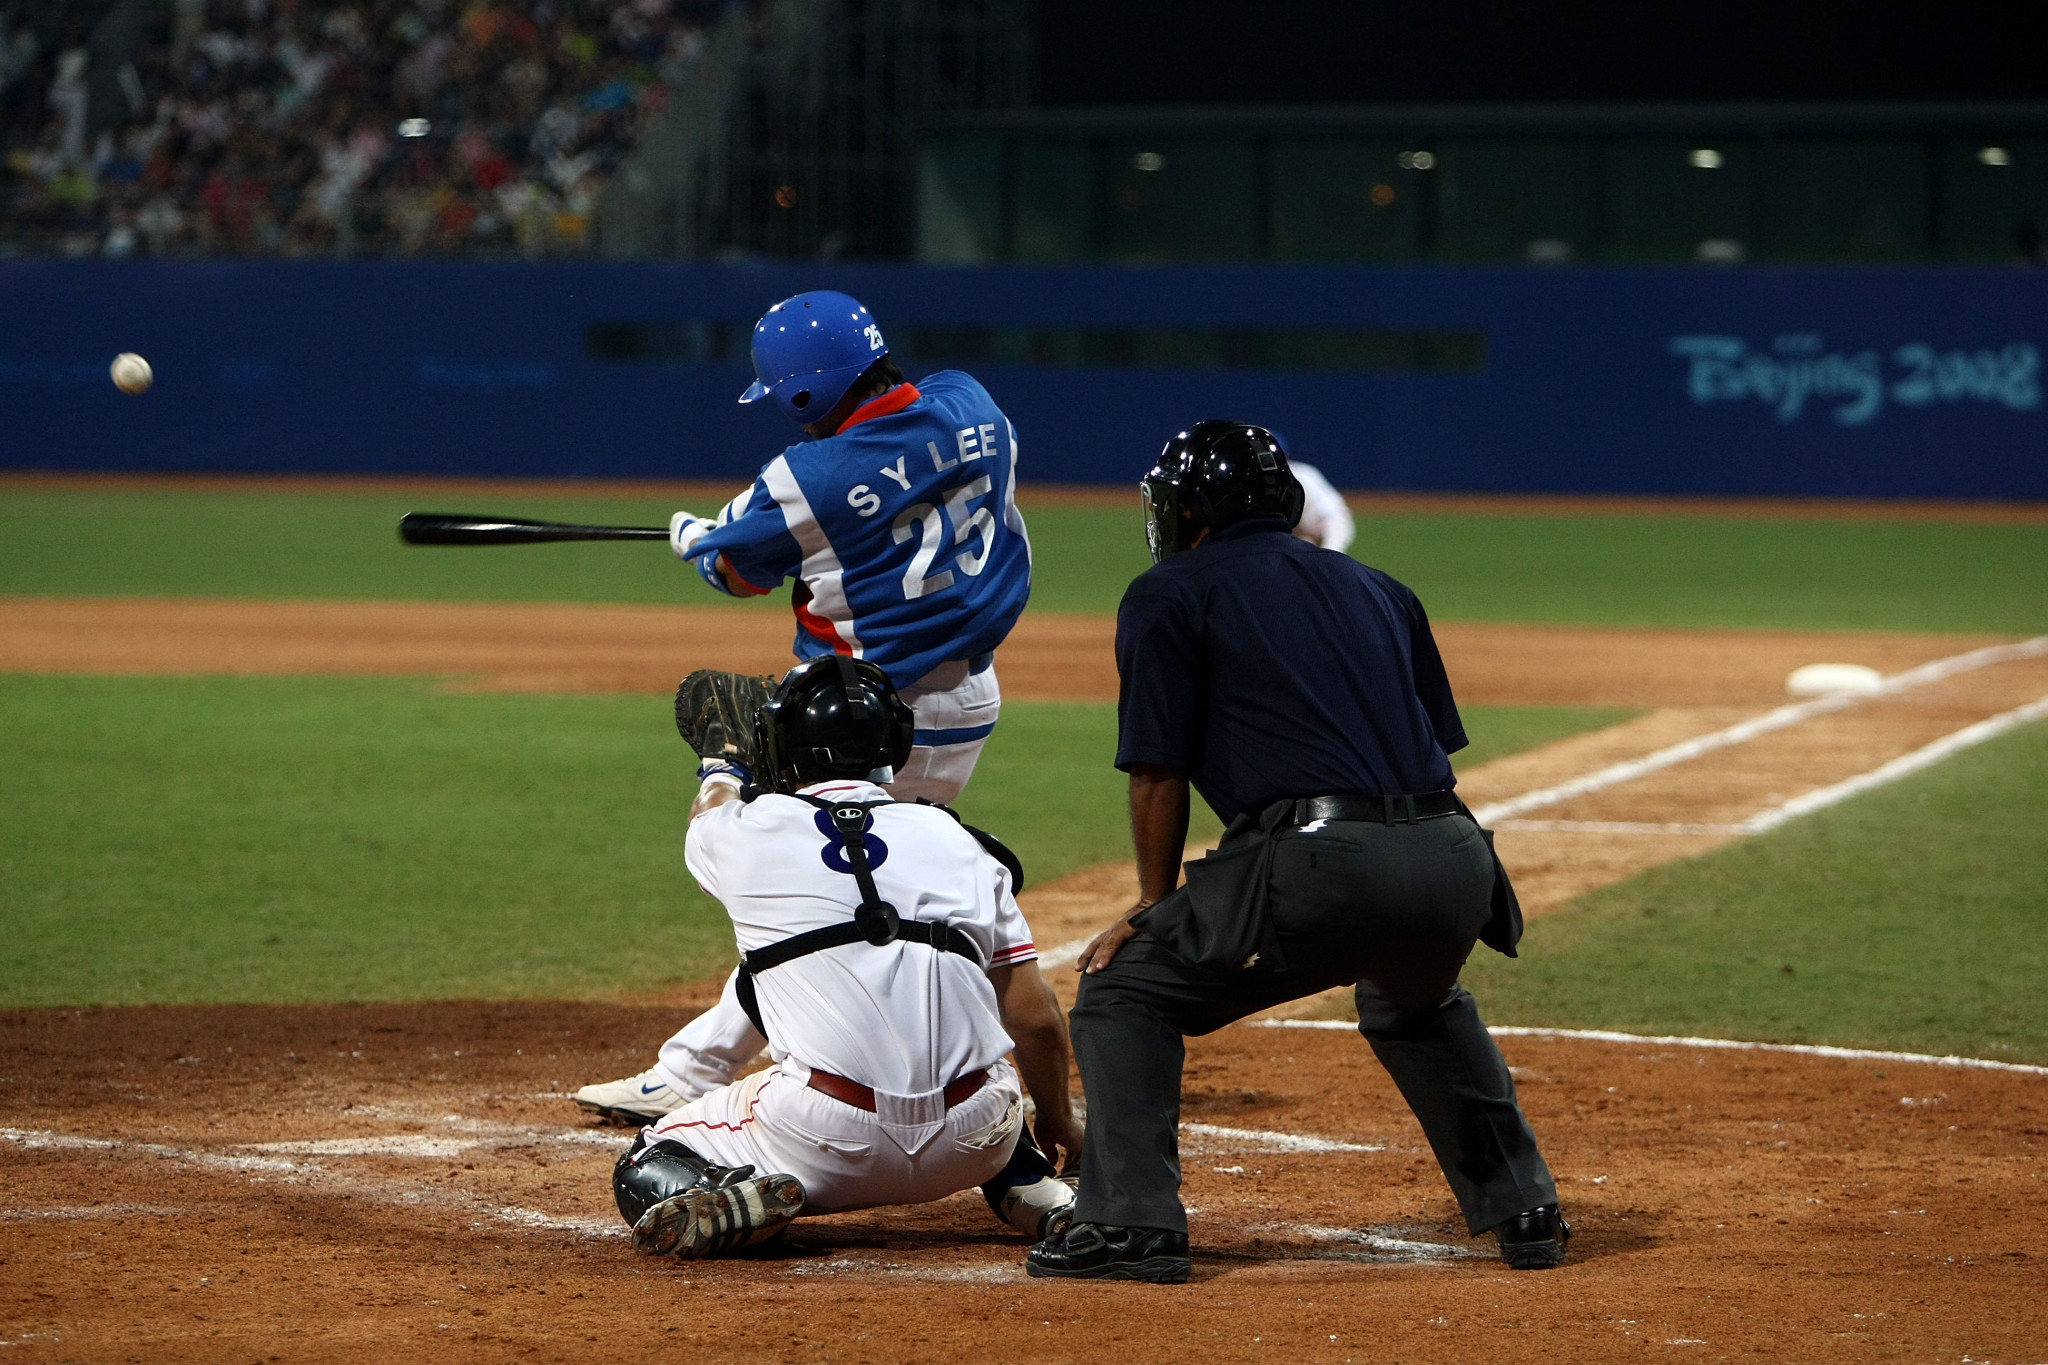 Baseball has not featured on the Olympic Games programme since Beijing 2008 but is set to return for Tokyo 2020 ©Getty Images